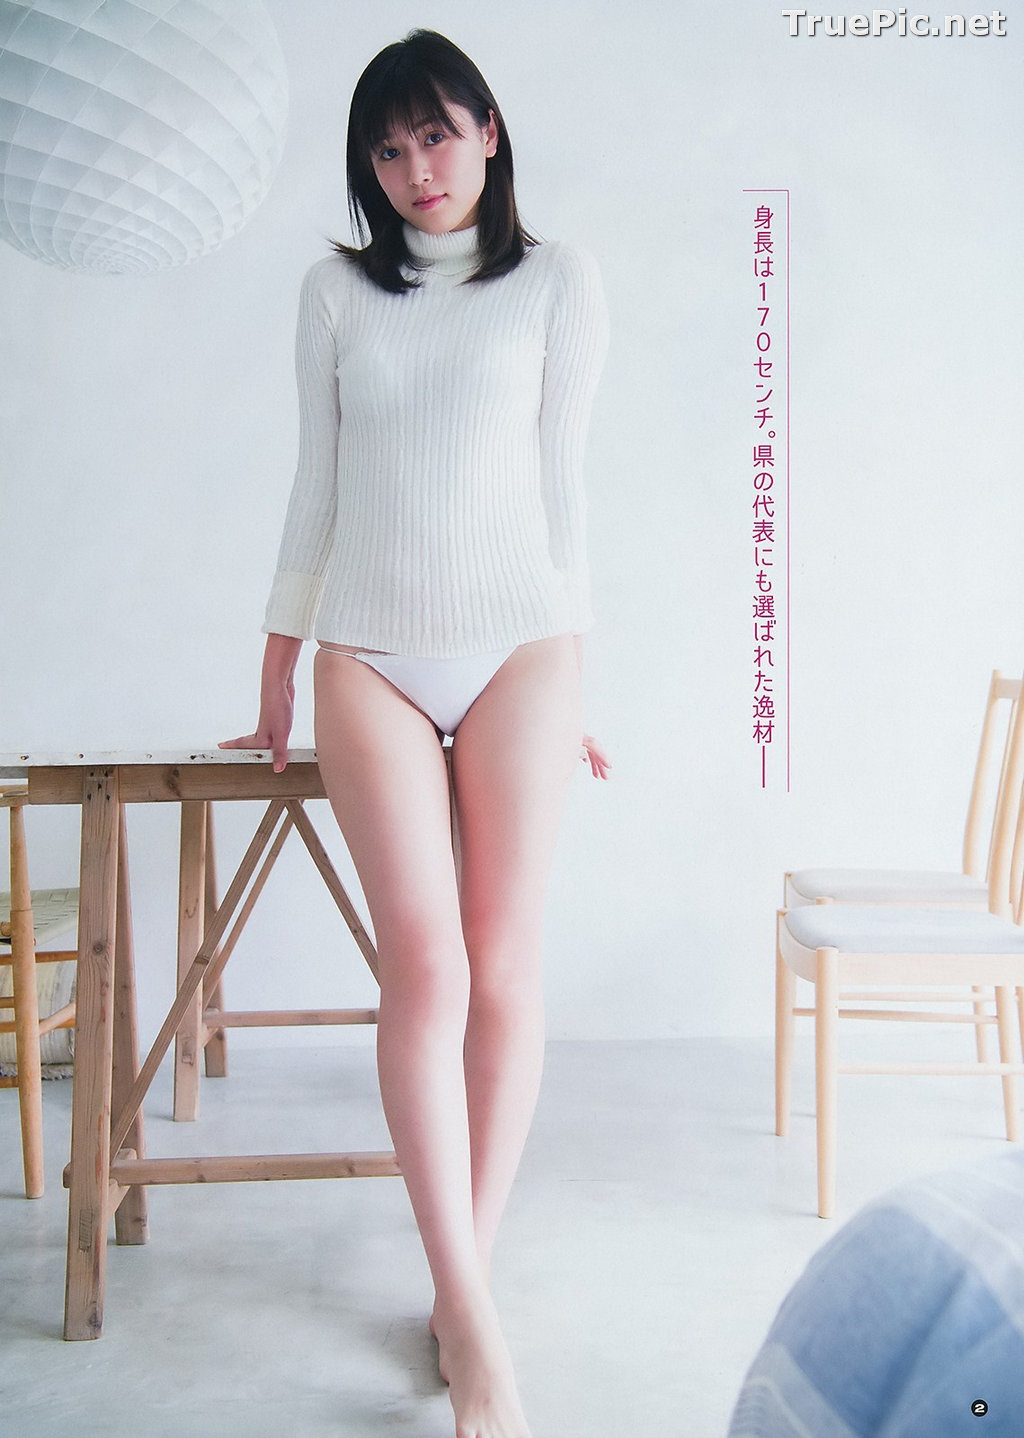 ImageJapanese Gravure Idol and Actress - Kitamuki Miyu (北向珠夕) - Sexy Picture Collection 2020 - TruePic.net - Picture-4